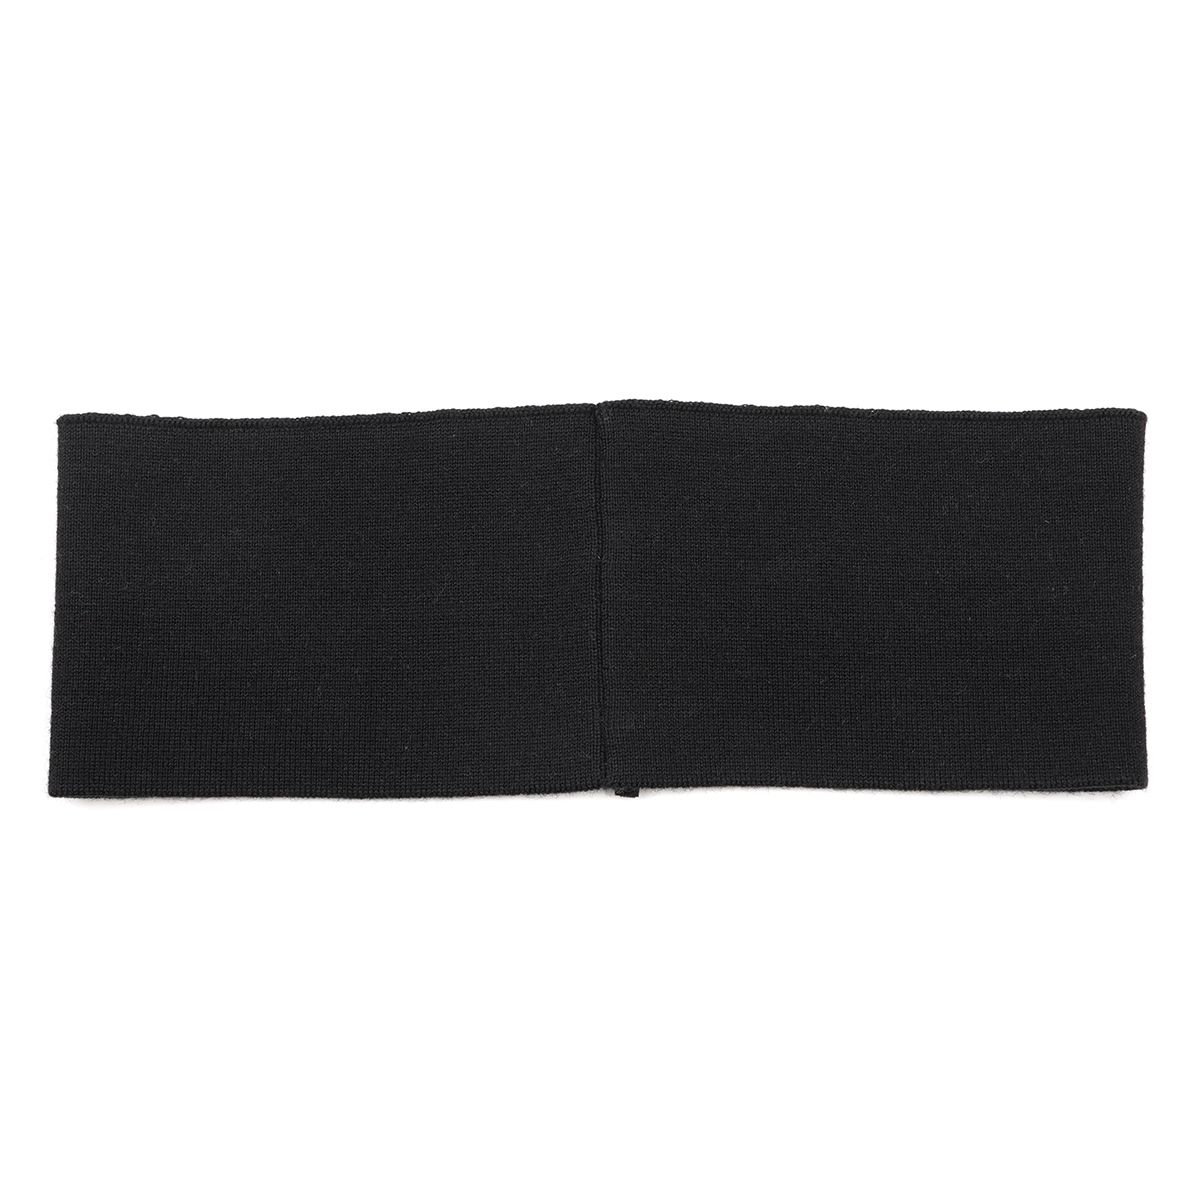 1017 ALYX 9SM LOGO HEAD BAND / BLK0001 : BLACK